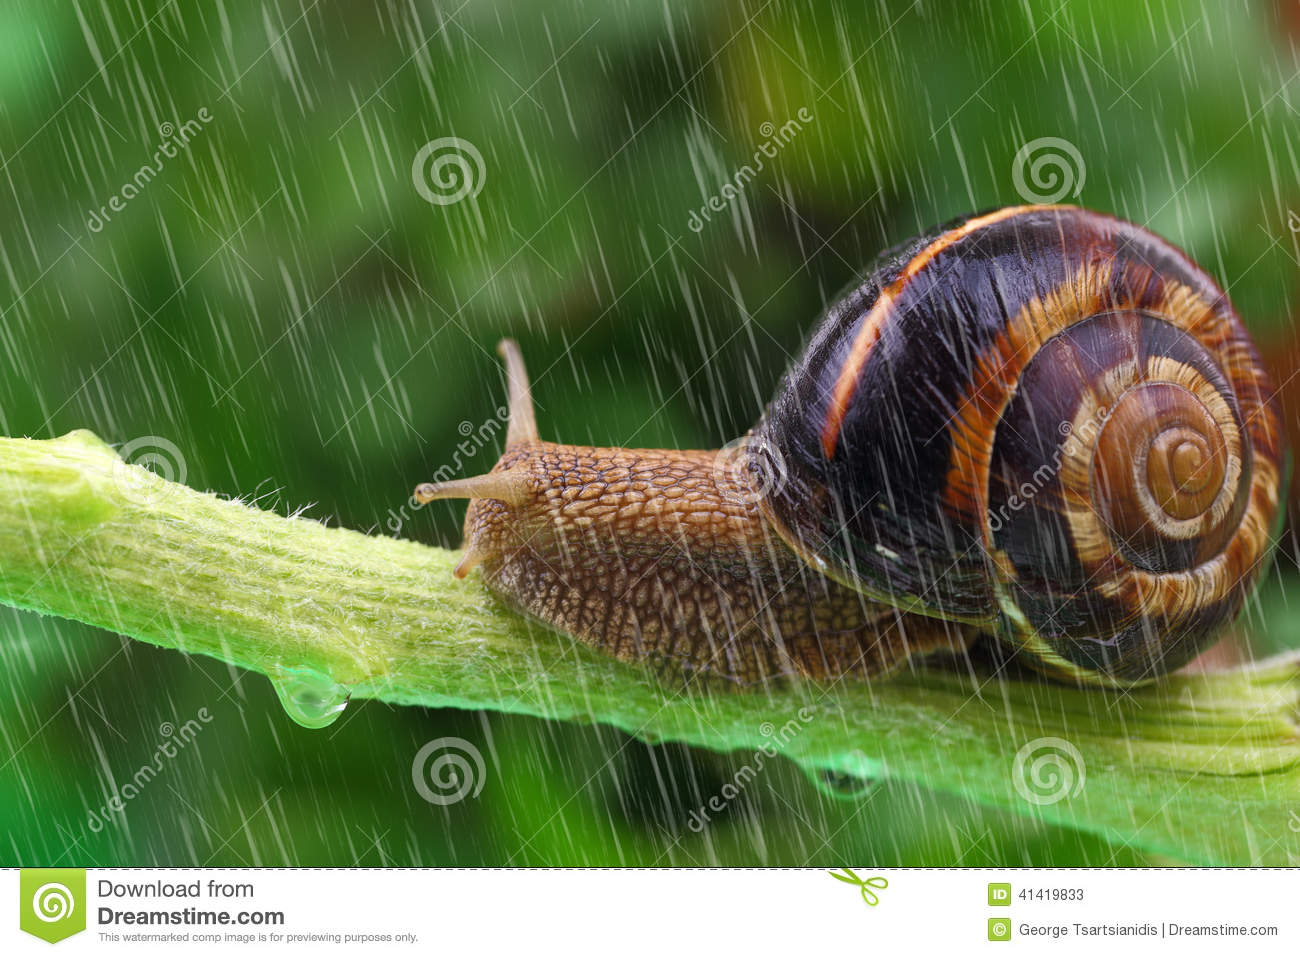 Snail crawling on plant with rain